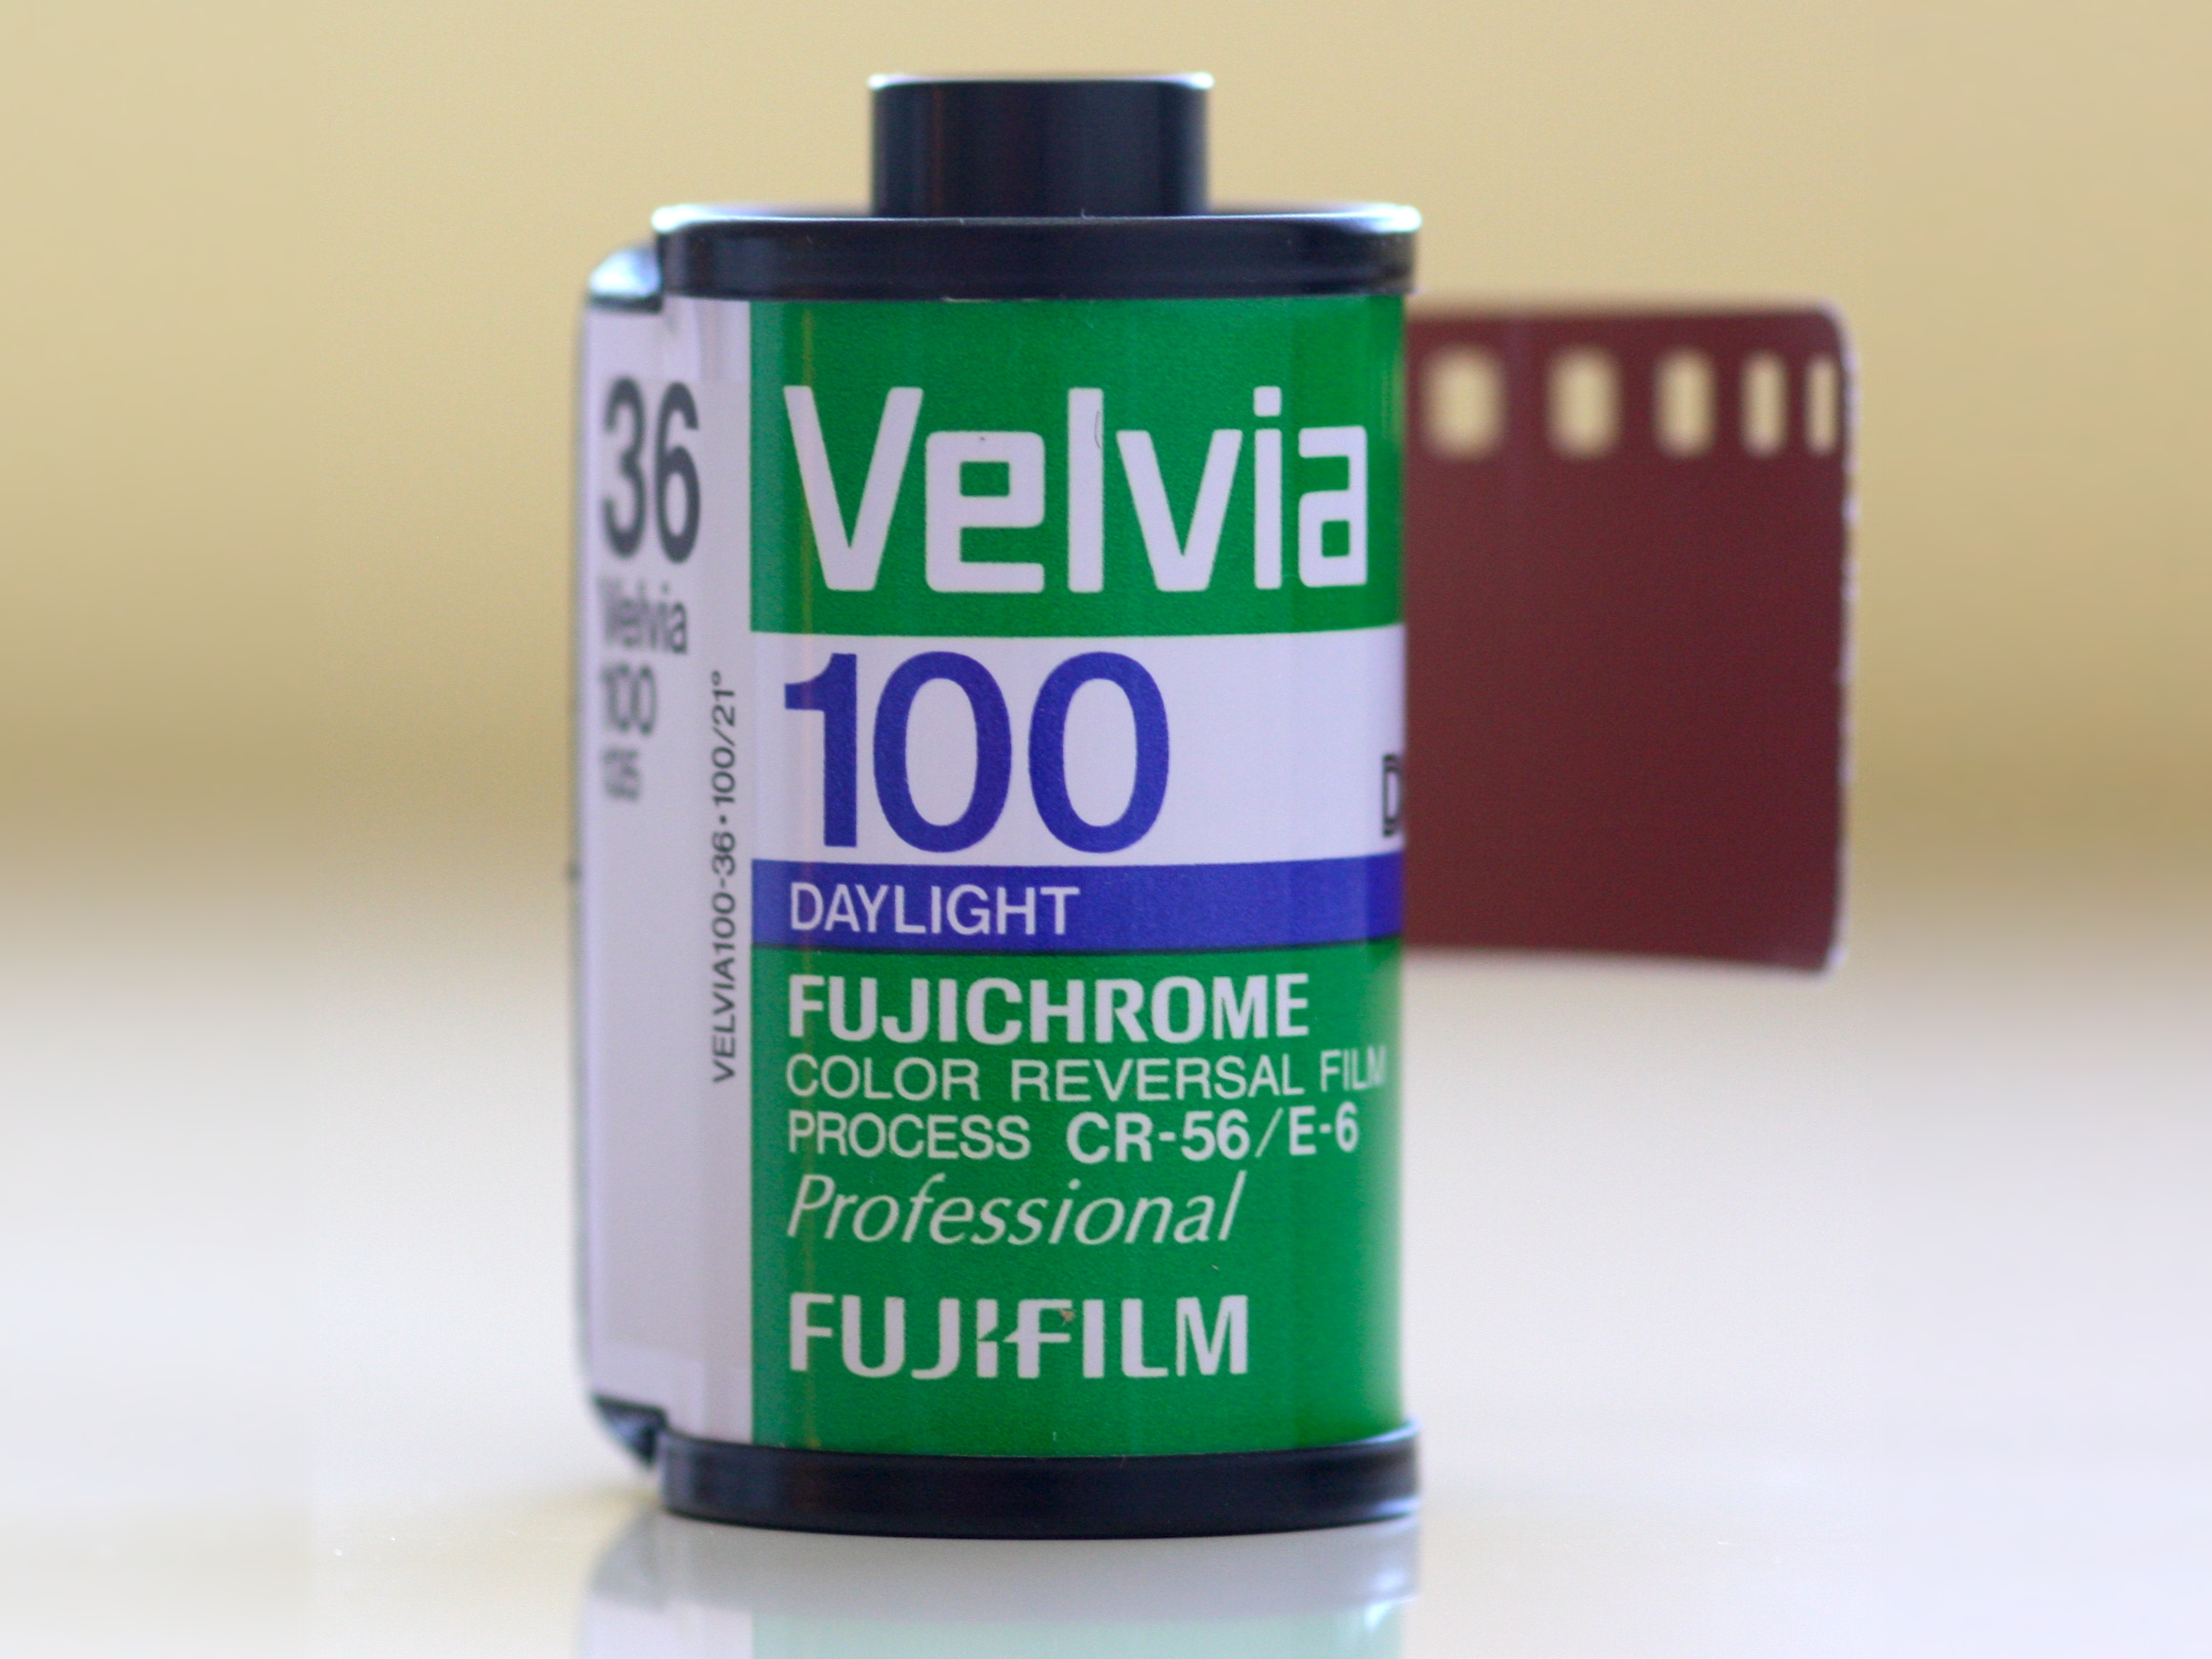 Description Fuji film Velvia.jpg